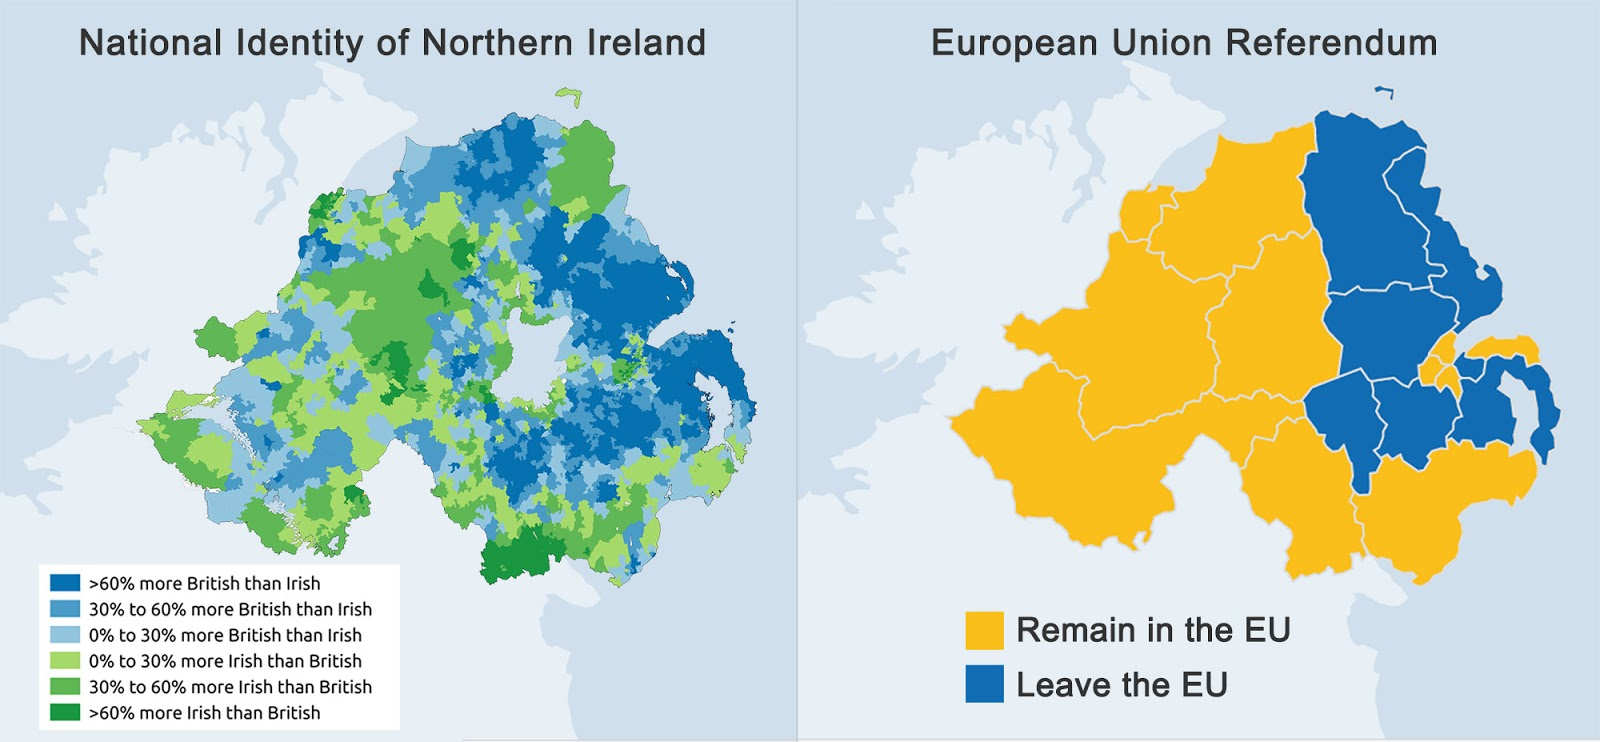 EU Referendum and National Identity of Northern Ireland